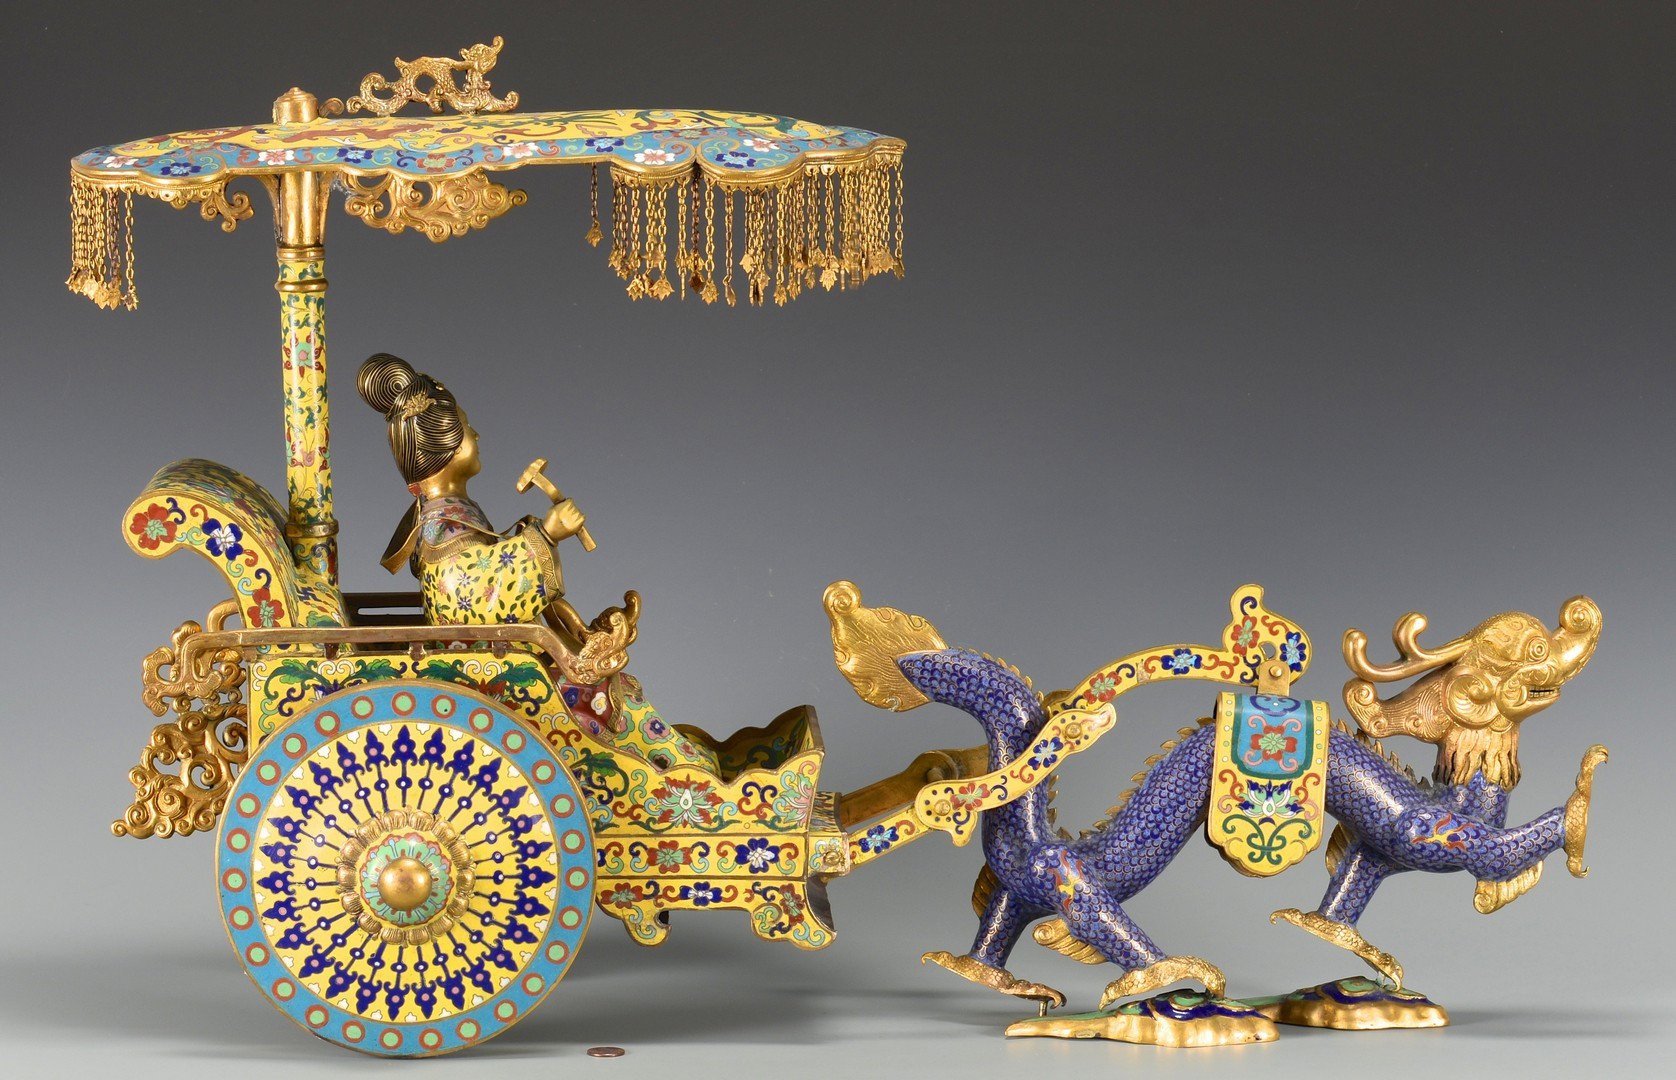 Lot 3594195: Chinese Cloisonne Dragon Rickshaw